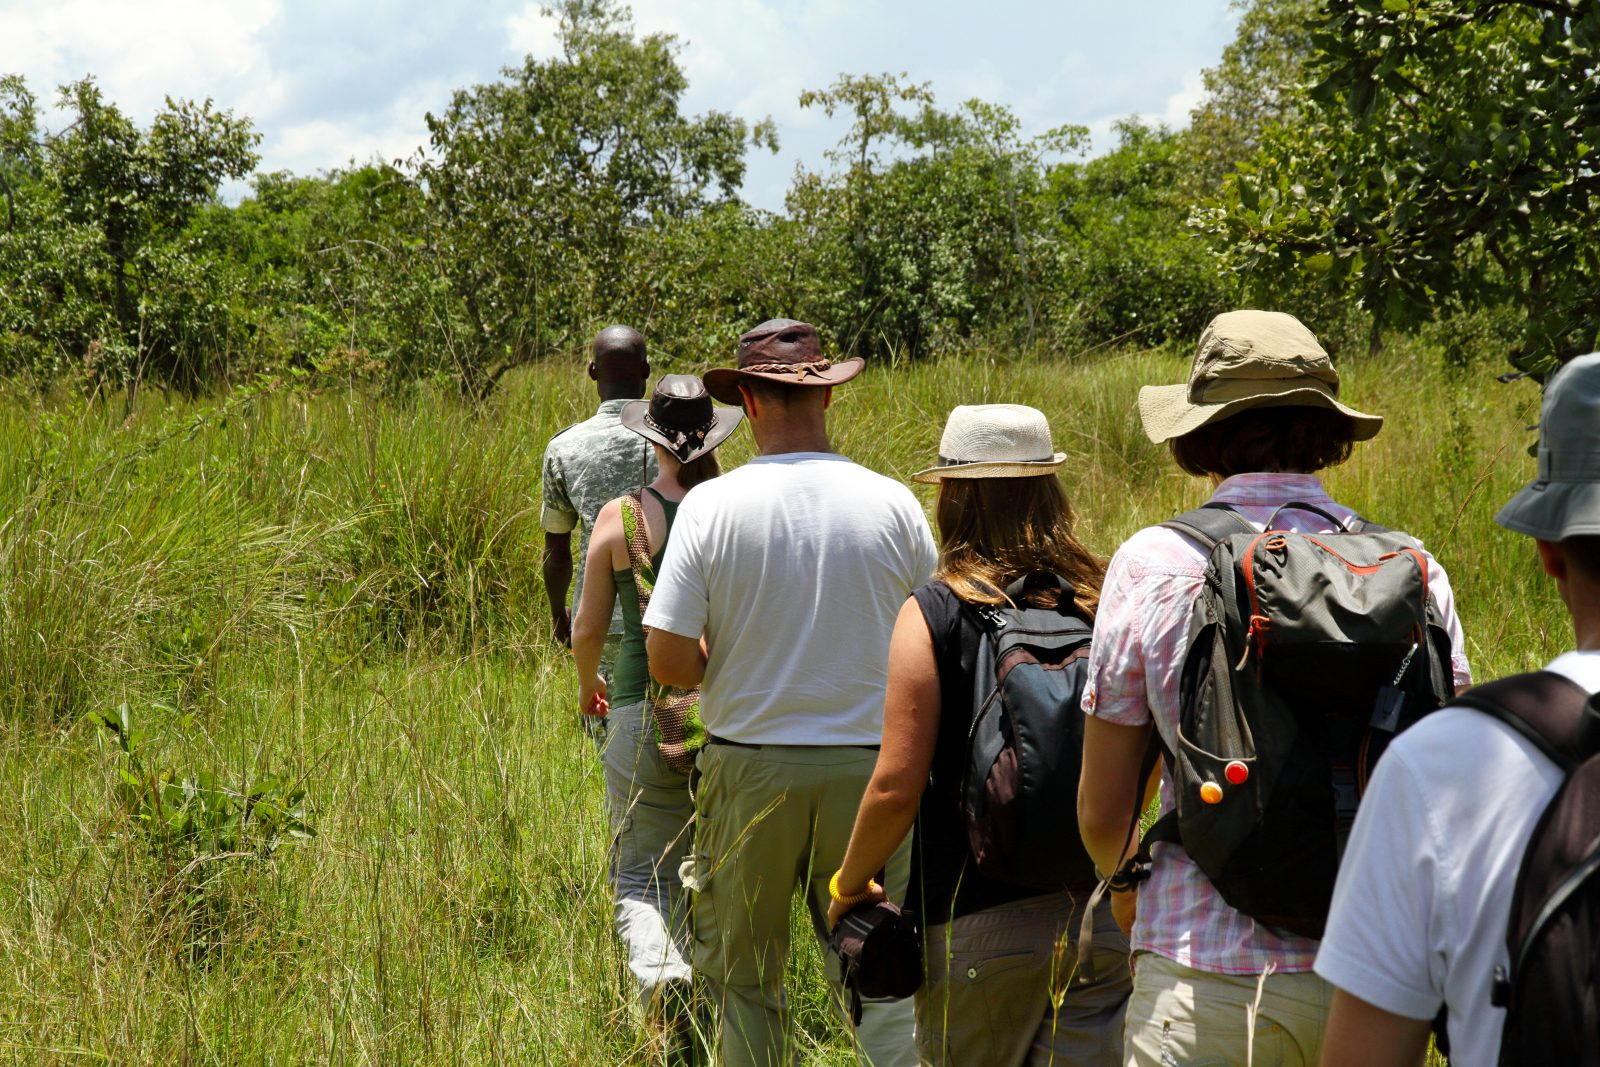 In the Footsteps of the Wild: 5 Star Walking Safaris 7